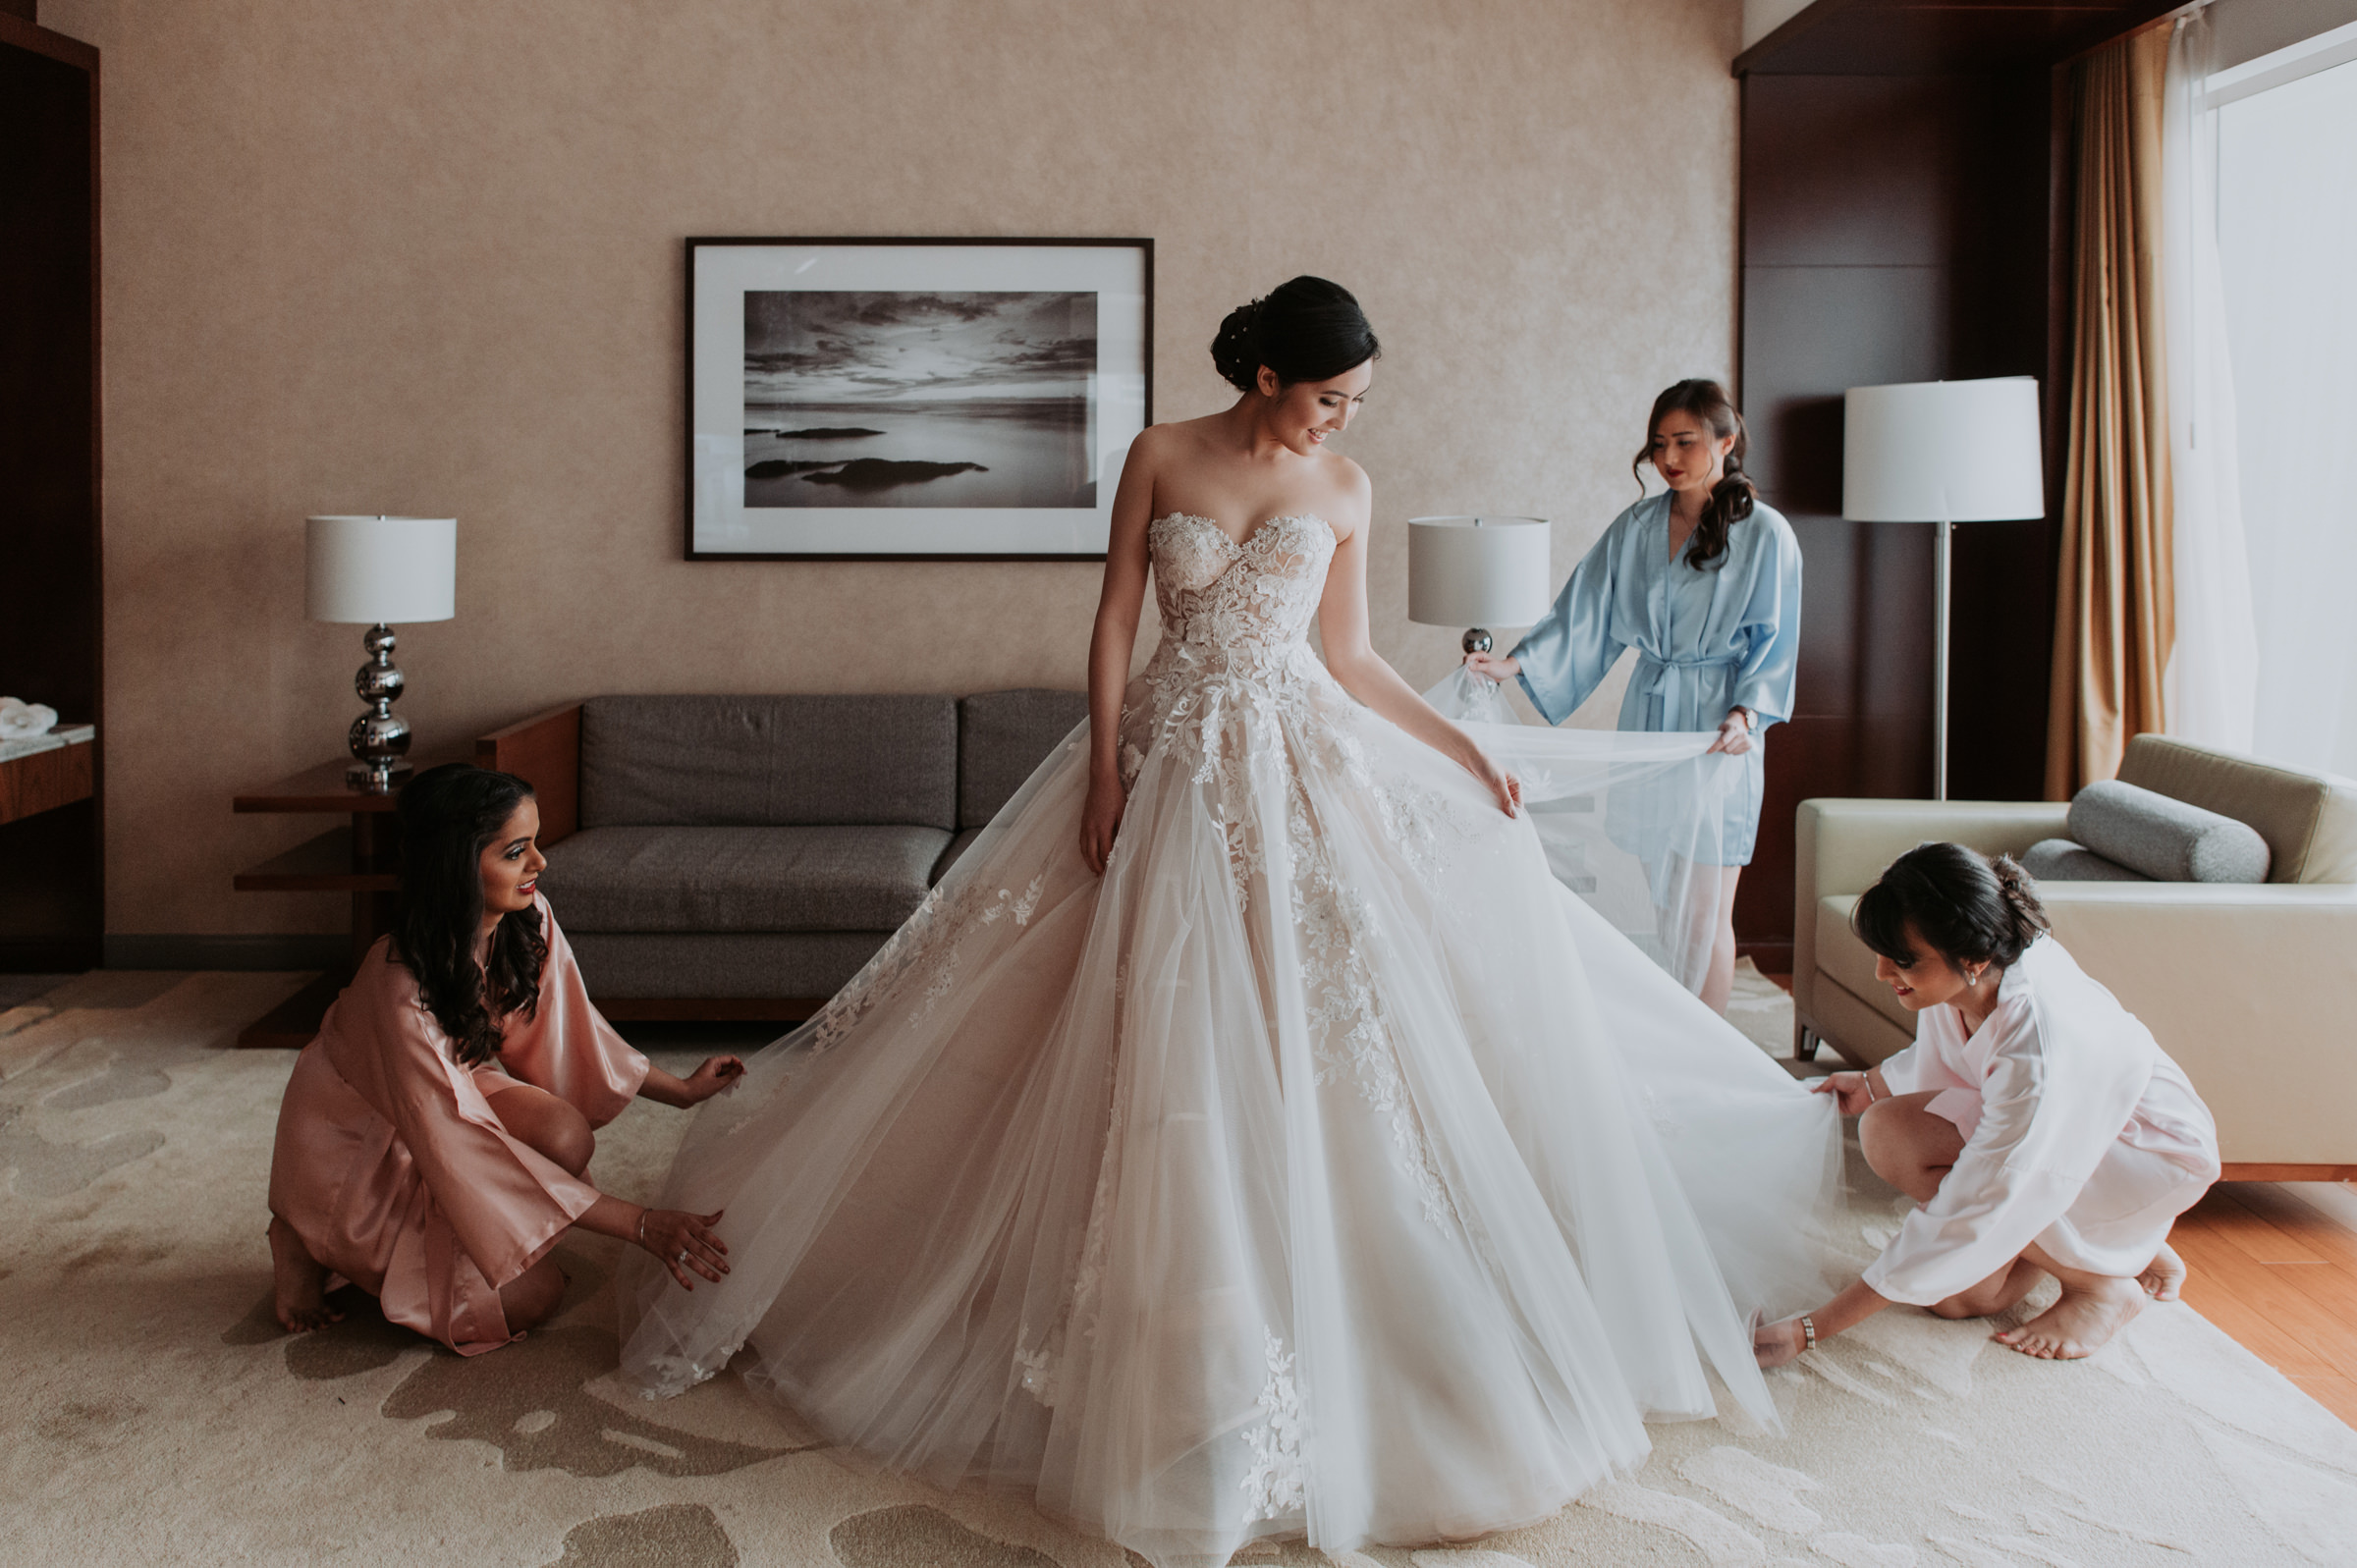 bridesmaids-assisting-bride-with-arranging-her-gown-mun-keat-studio